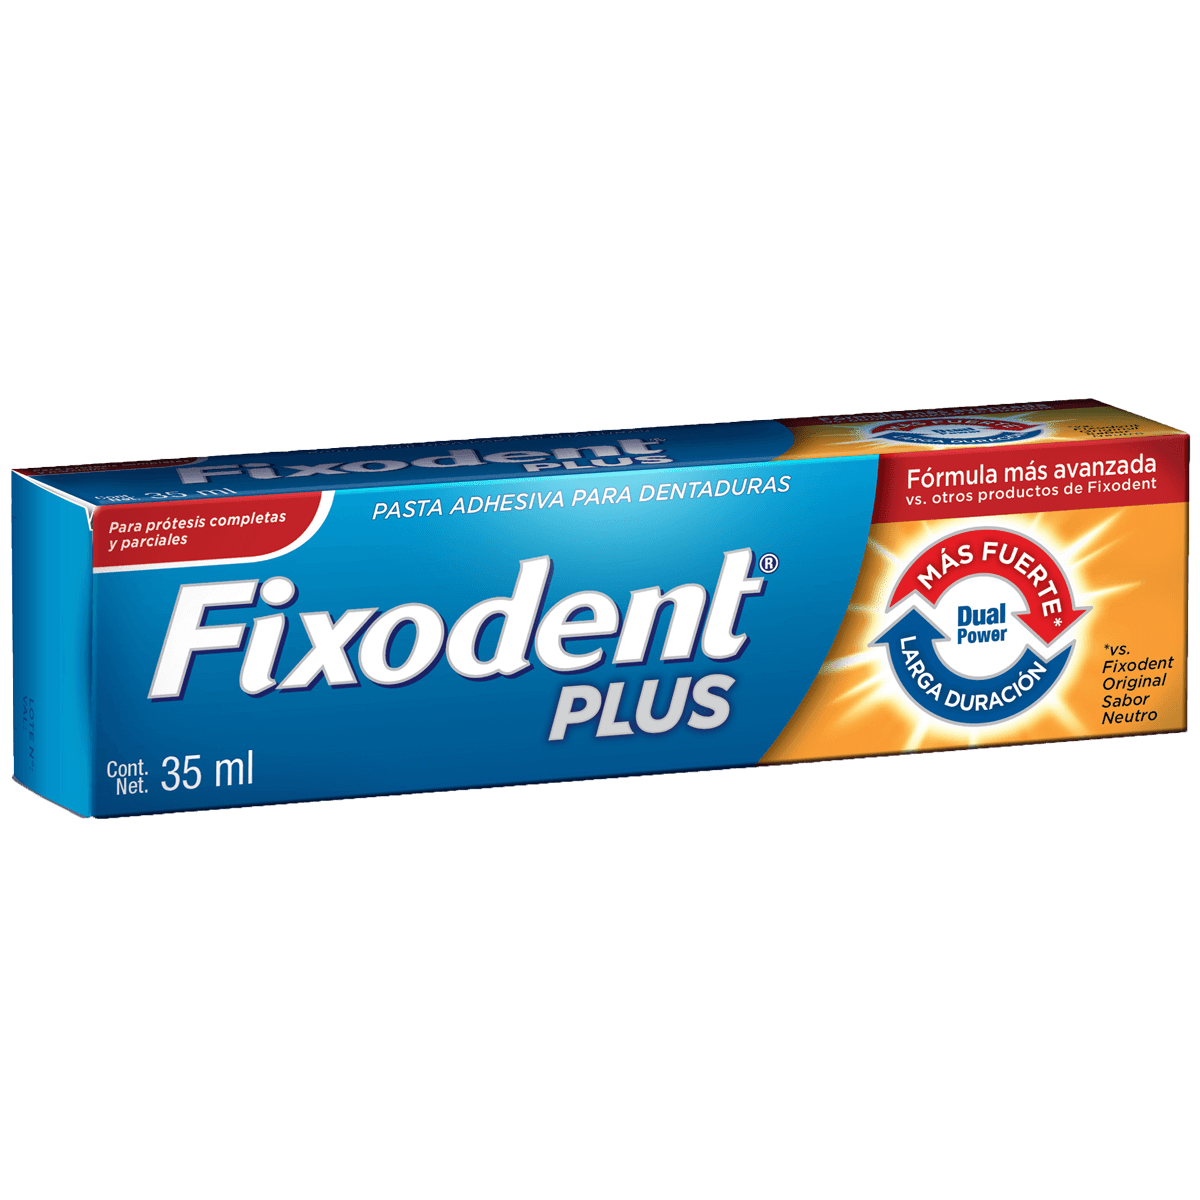 Adhesivo de dentadura Fixodent Plus Dual Power